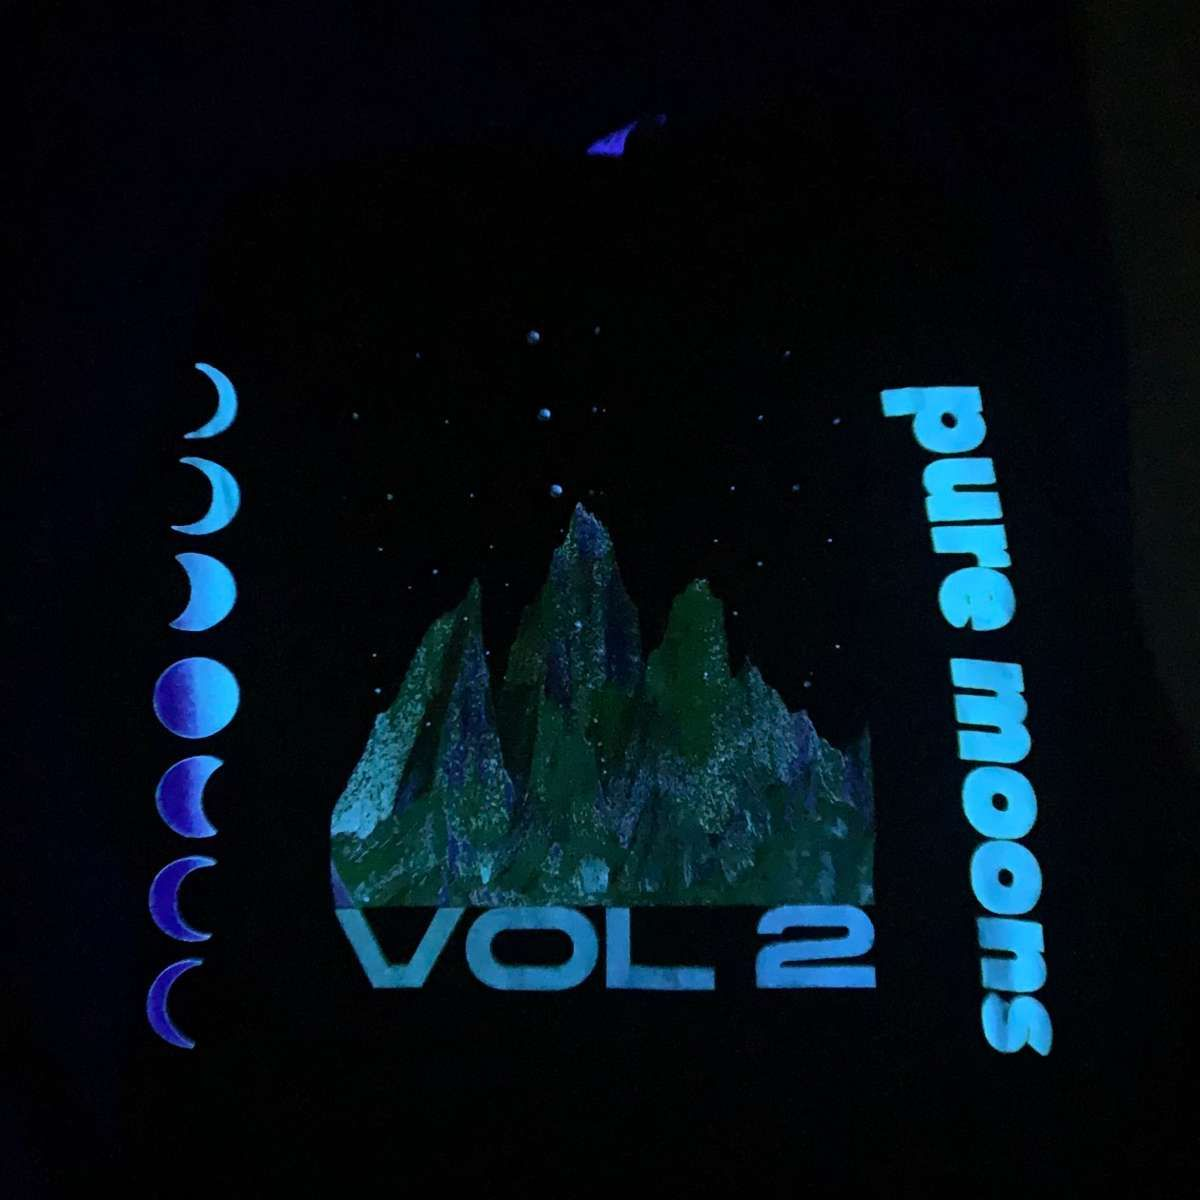 Pure Moons Vol. 2 *GLOW-IN-THE-DARK* Long Sleeve T-Shirt (Sold Out) - Moon Boots